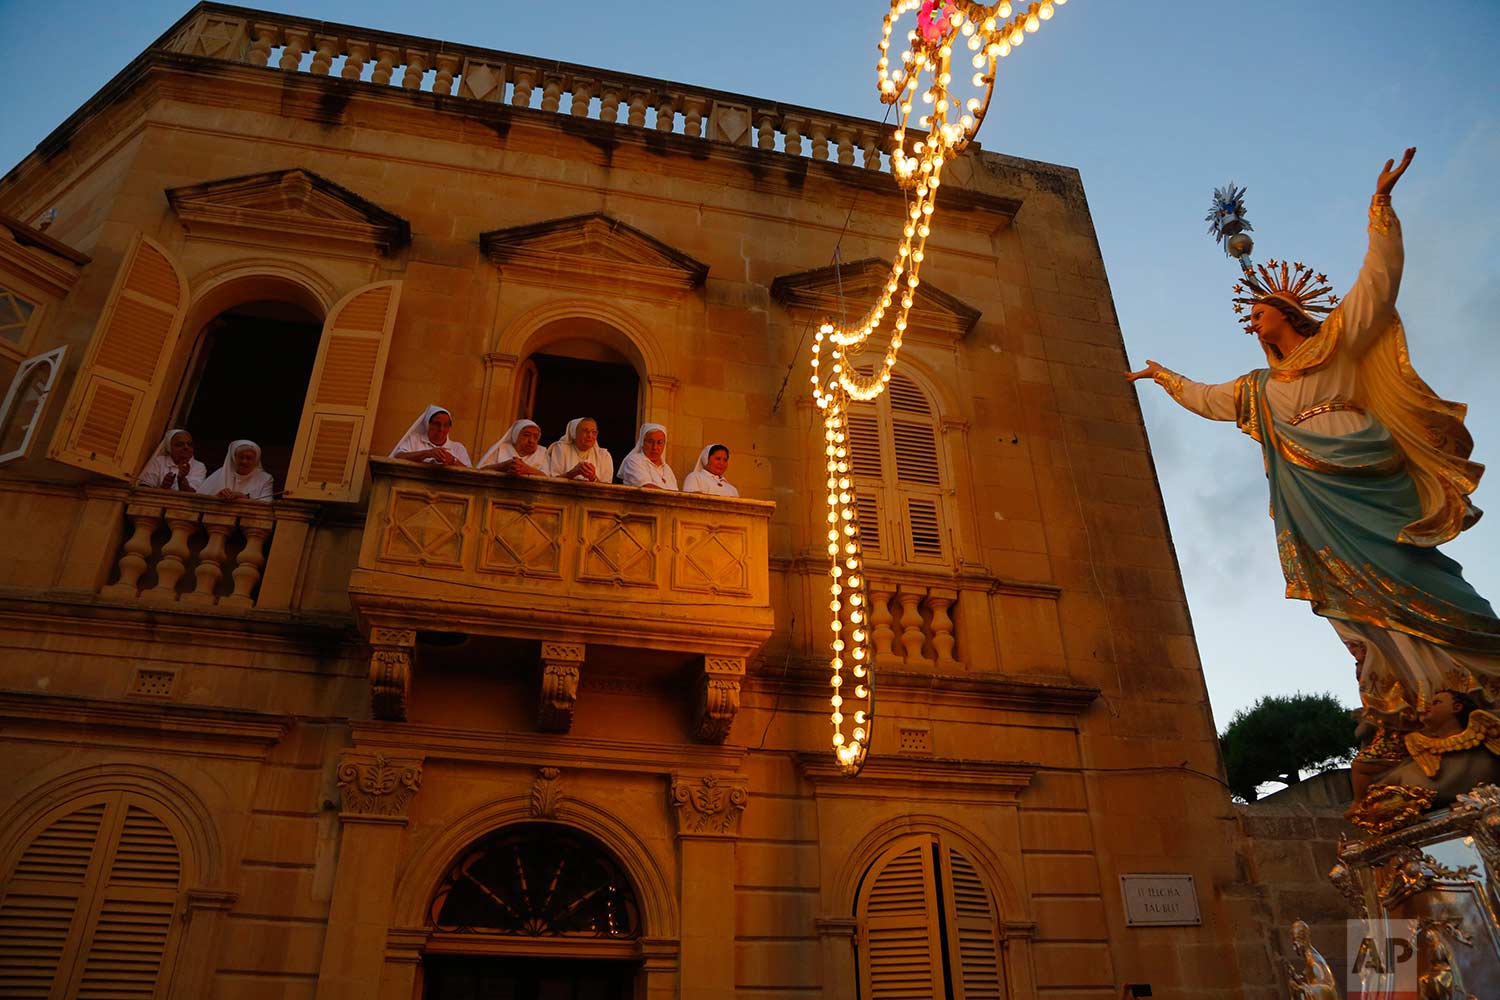 In this photo taken on Wednesday, Aug. 15, 2018, nuns watch the statue of the Virgin Mary being carried through the streets of Rabat on the island of Gozo in the Maltese archipelago, during the feast day of the Assumption of Mary. (AP Photo/Niranjan Shrestha)